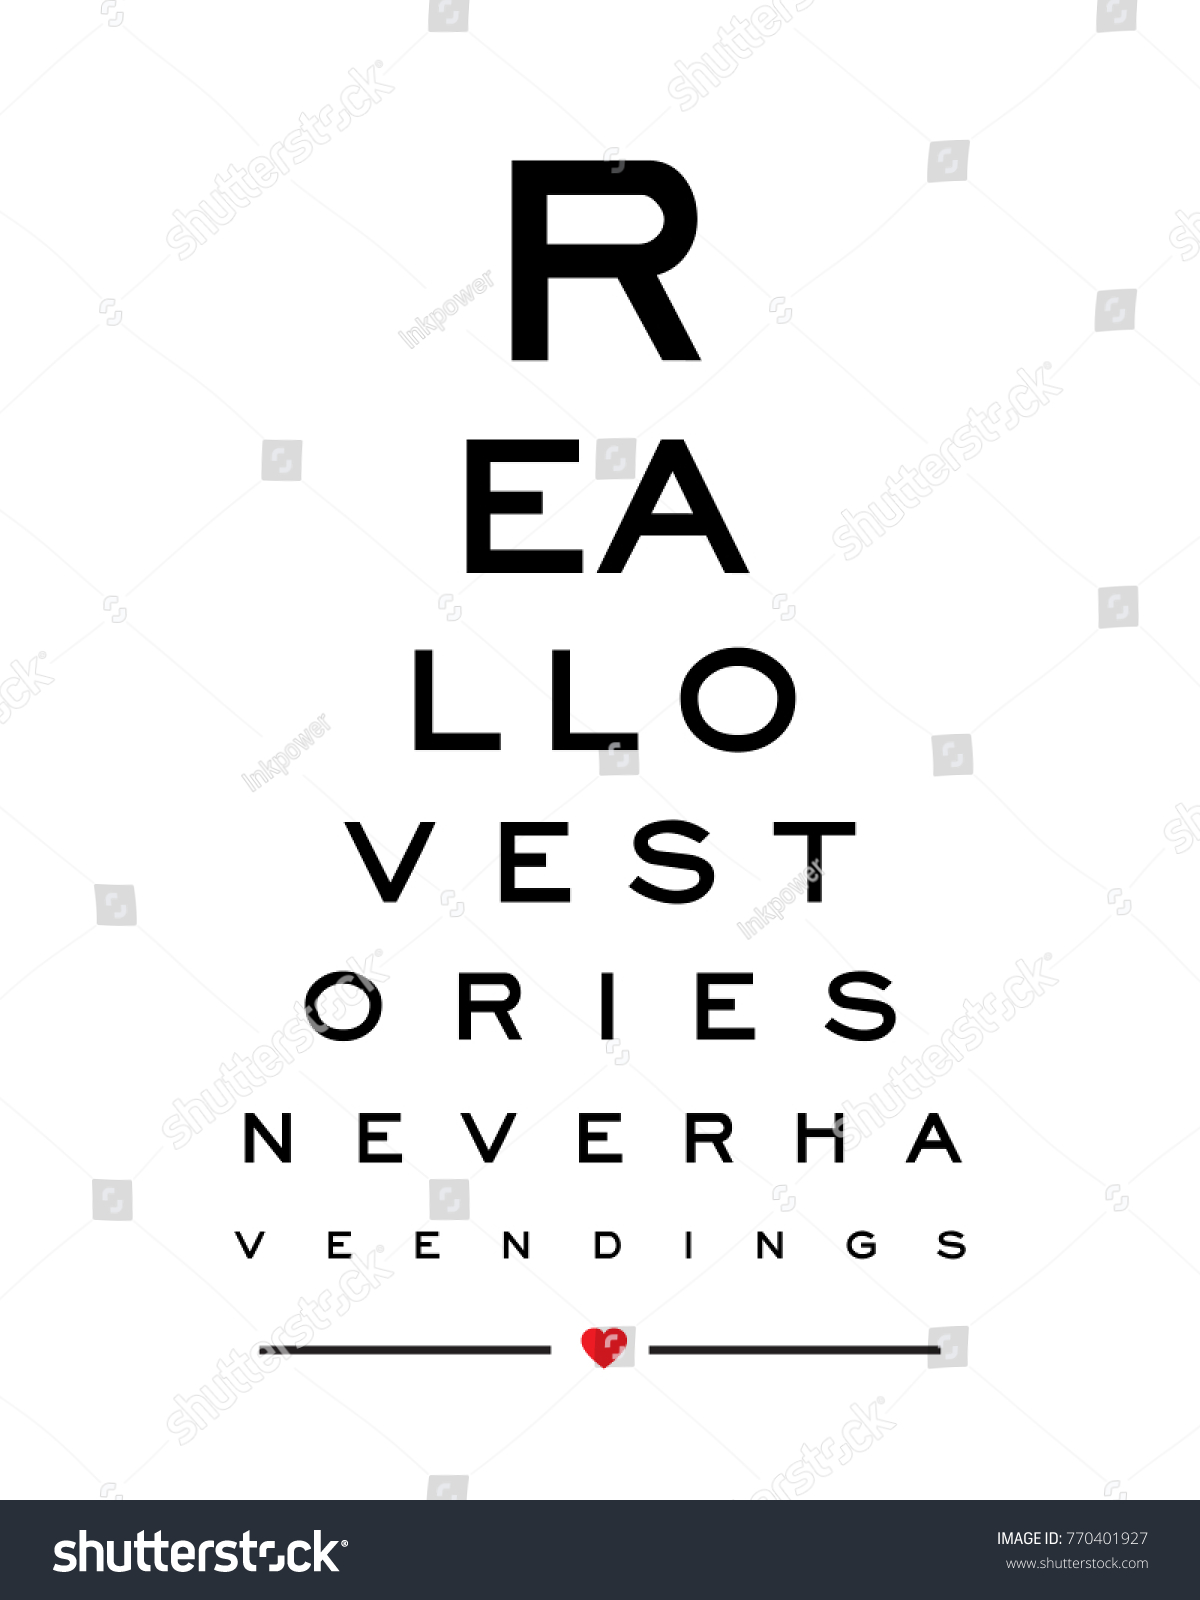 Snellen eye chart printable pdf images free any chart examples eye chart printable pdf choice image free any chart examples eye chart printable pdf images free nvjuhfo Image collections